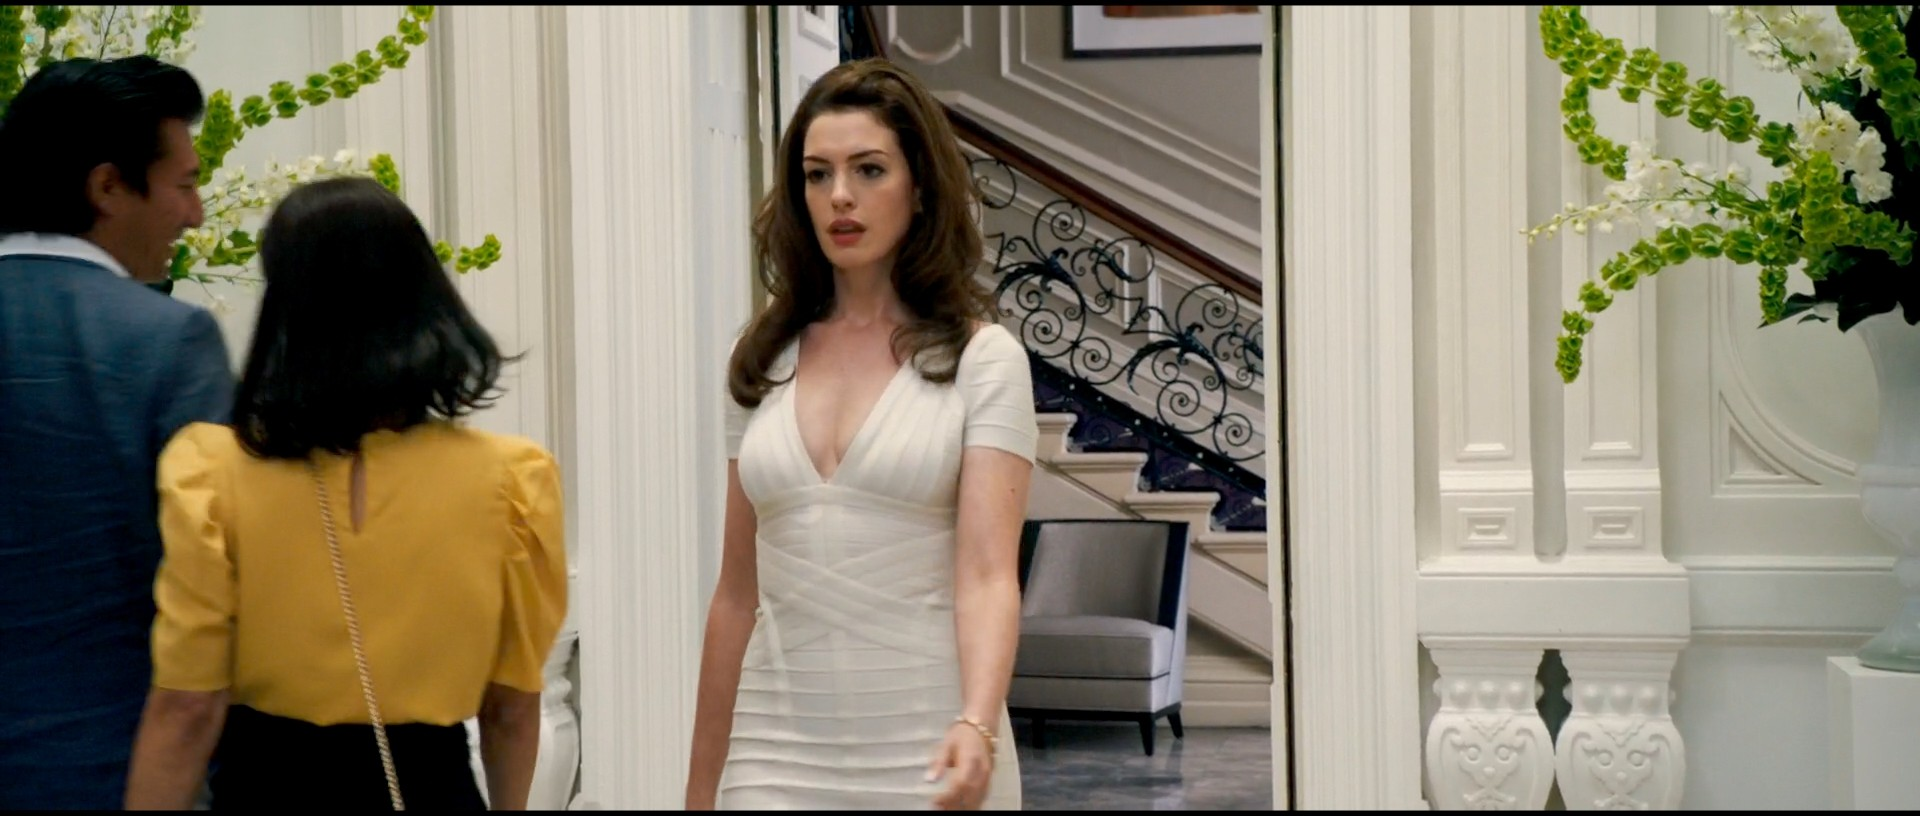 Anne Hathaway hot and sexy - The Hustle (2019) HD 1080p Web (10)